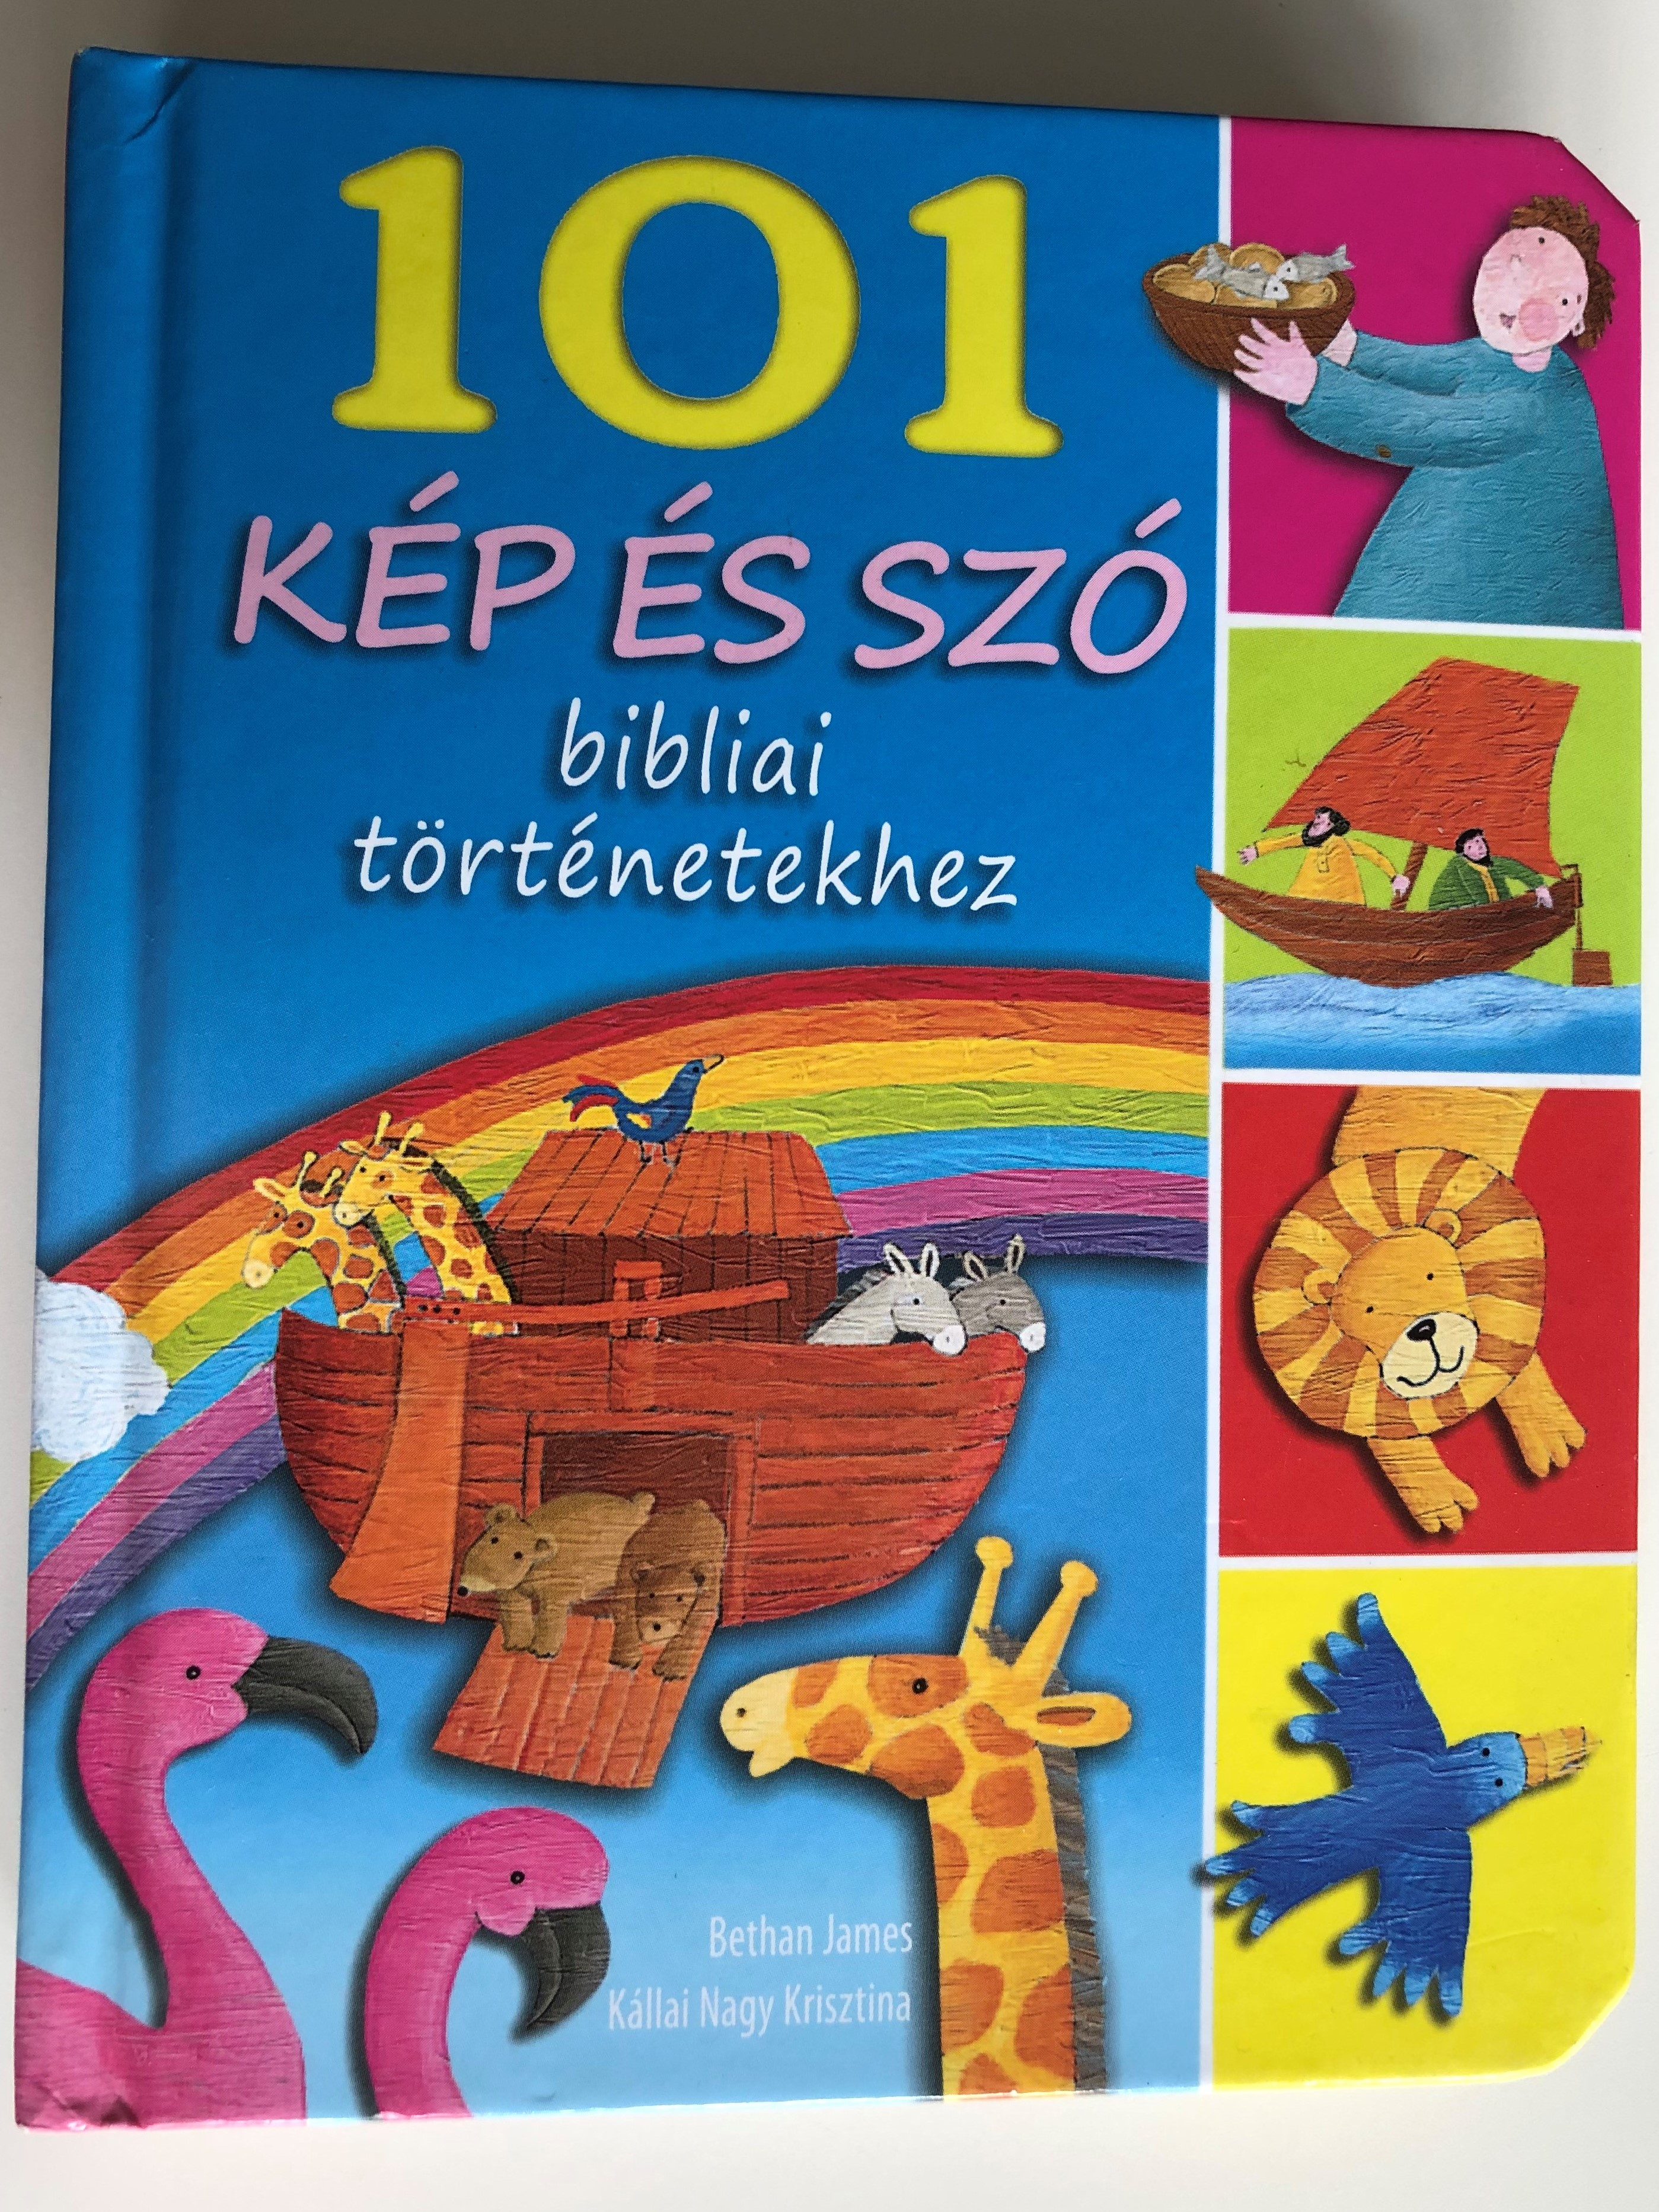 101-k-p-s-sz-bibliai-t-rt-netekhez-by-bethan-james-hungarian-translation-of-101-bible-story-words-by-looking-at-the-pictures-they-learn-the-words-that-make-up-their-favourite-bible-stories.-1-.jpg